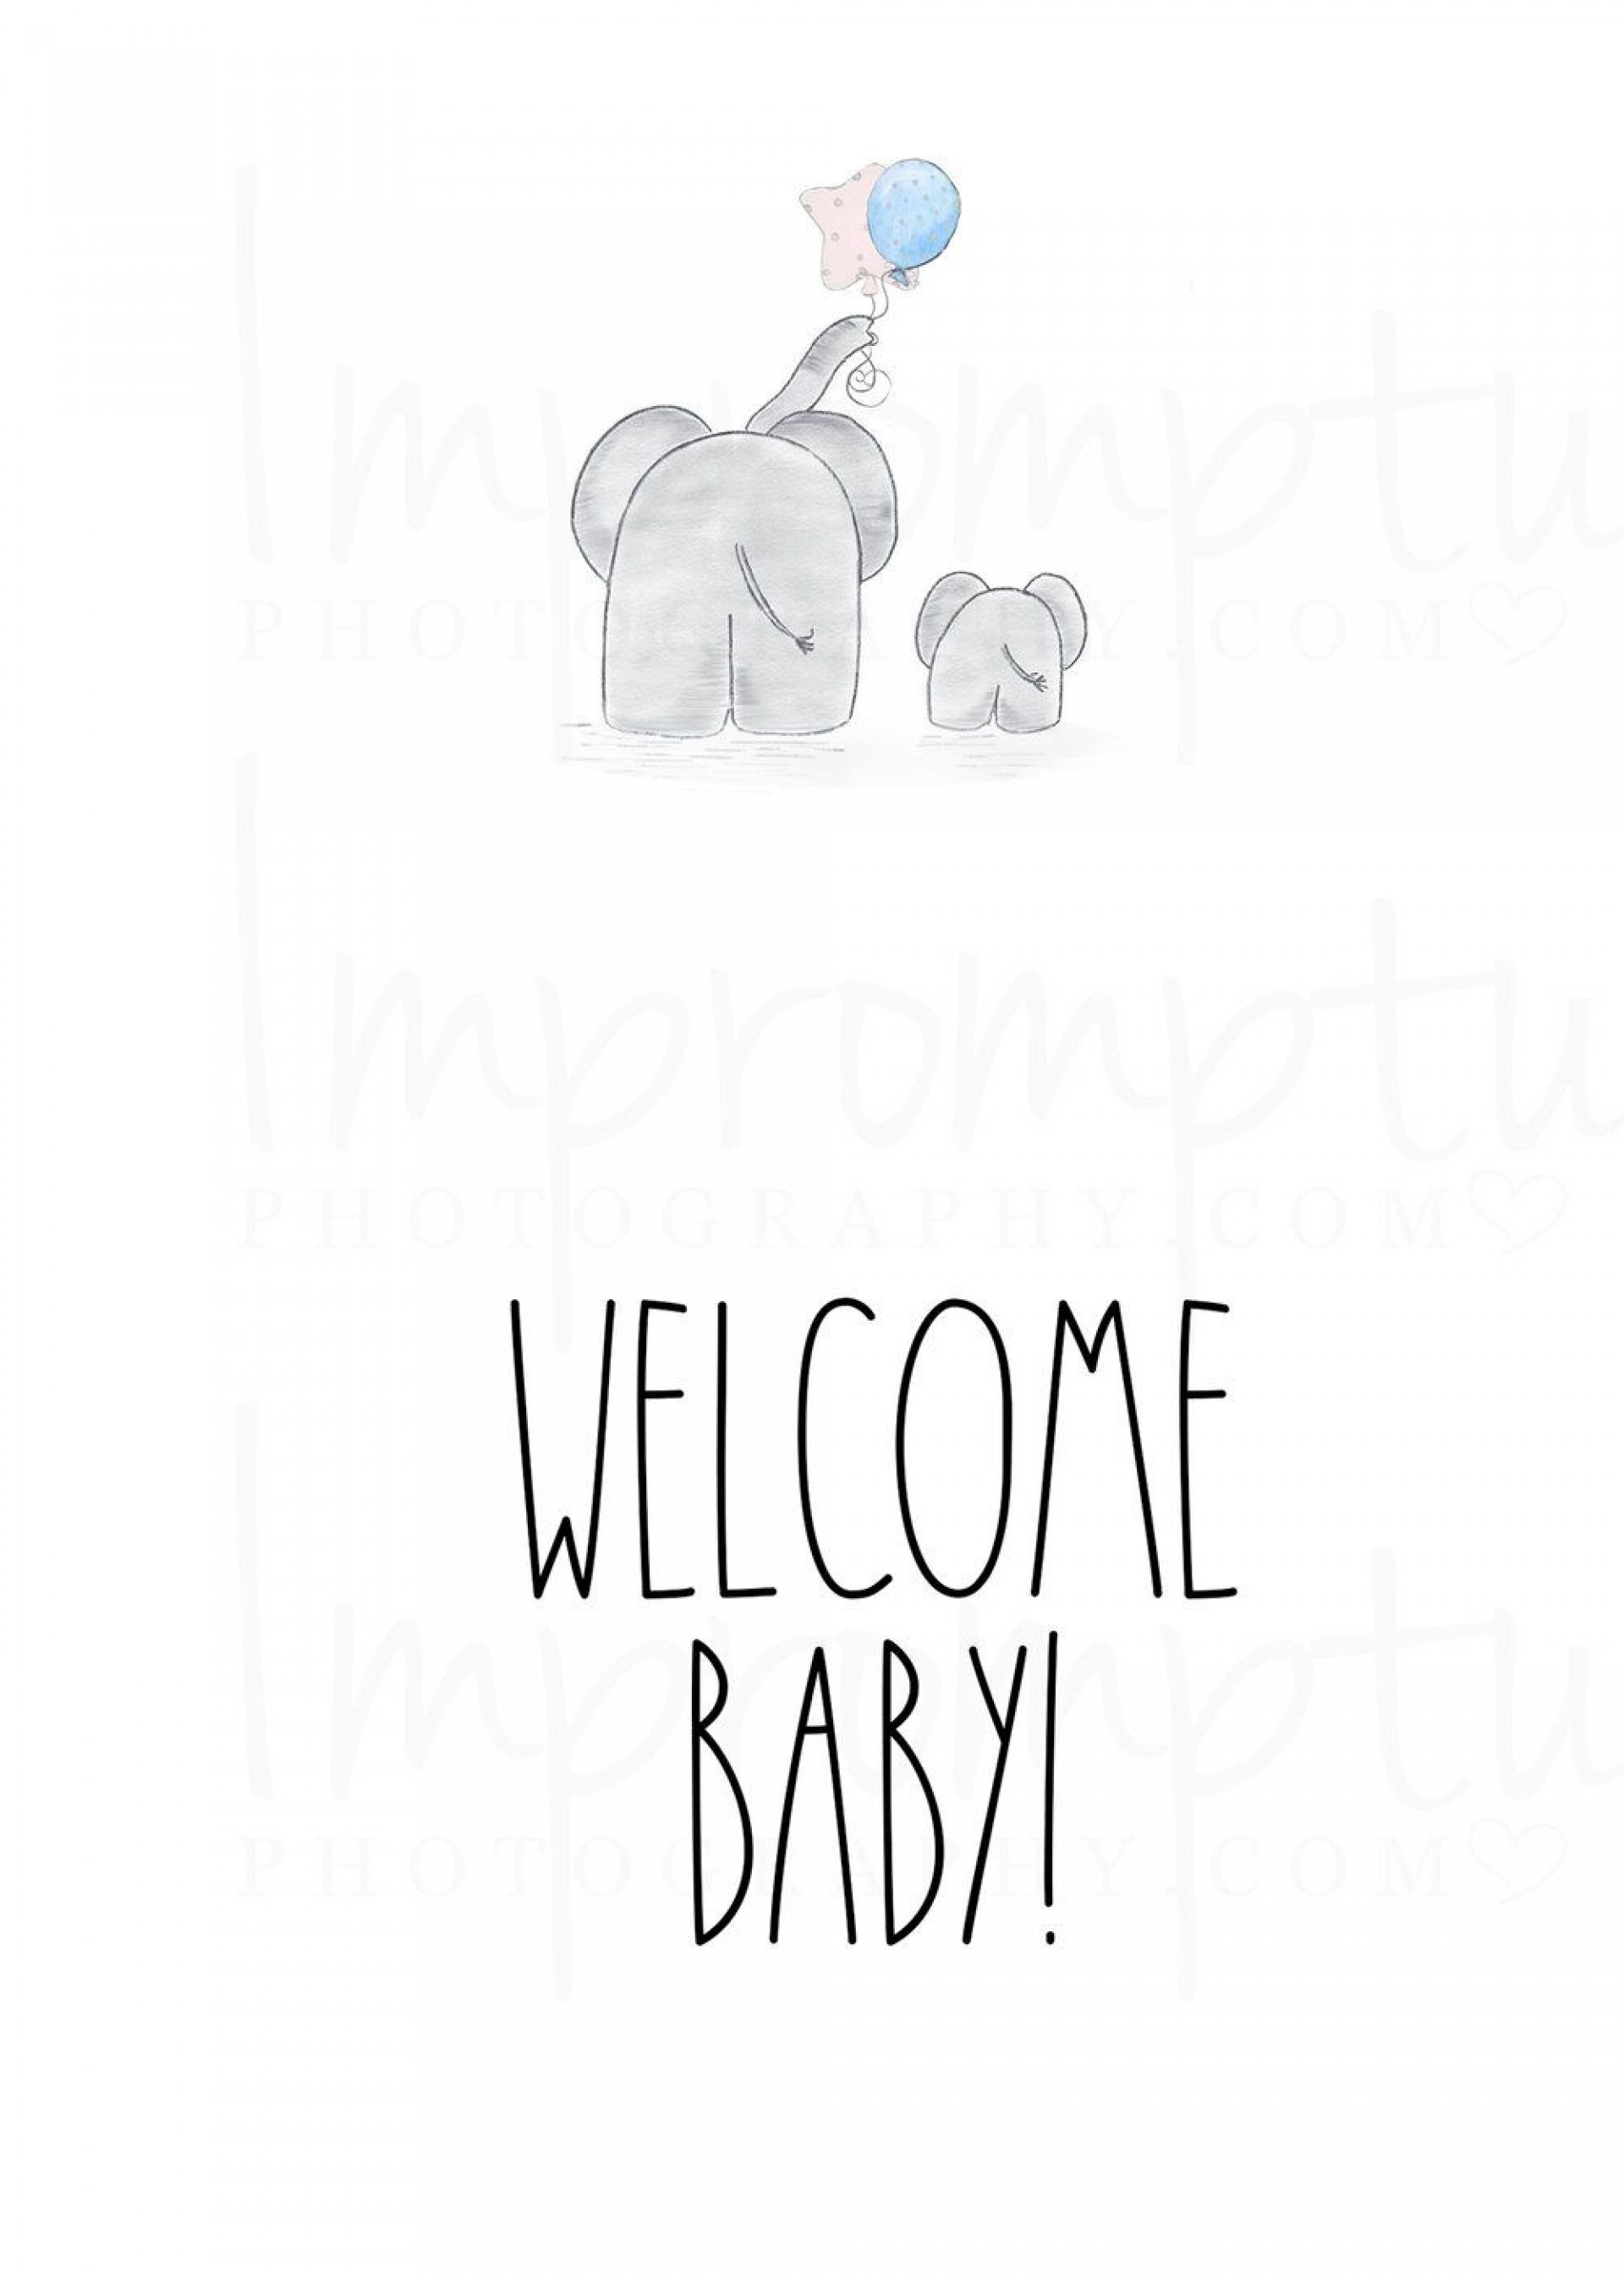 010 Dreaded Baby Shower Card Printable Black And White Highest Quality 1920